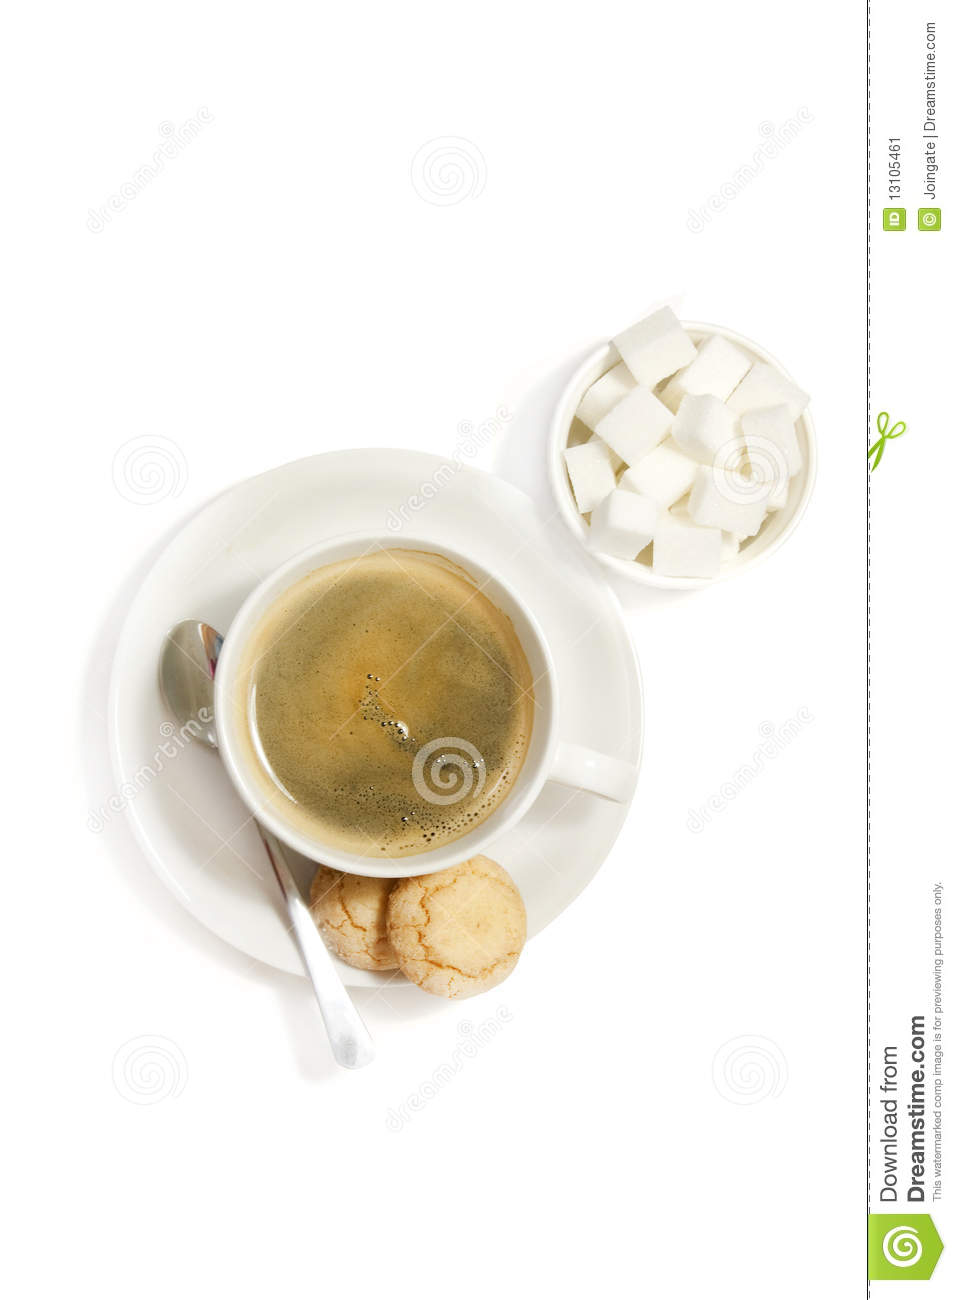 More similar stock images of ` Coffee and biscuits on white `